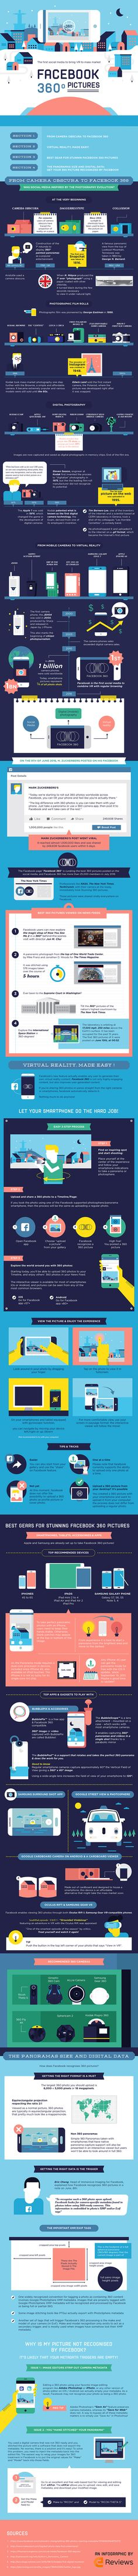 The First Social Media To Bring Virtual Reality To Mass Market - Facebook 360 Photos (infographic) www.extentia.com